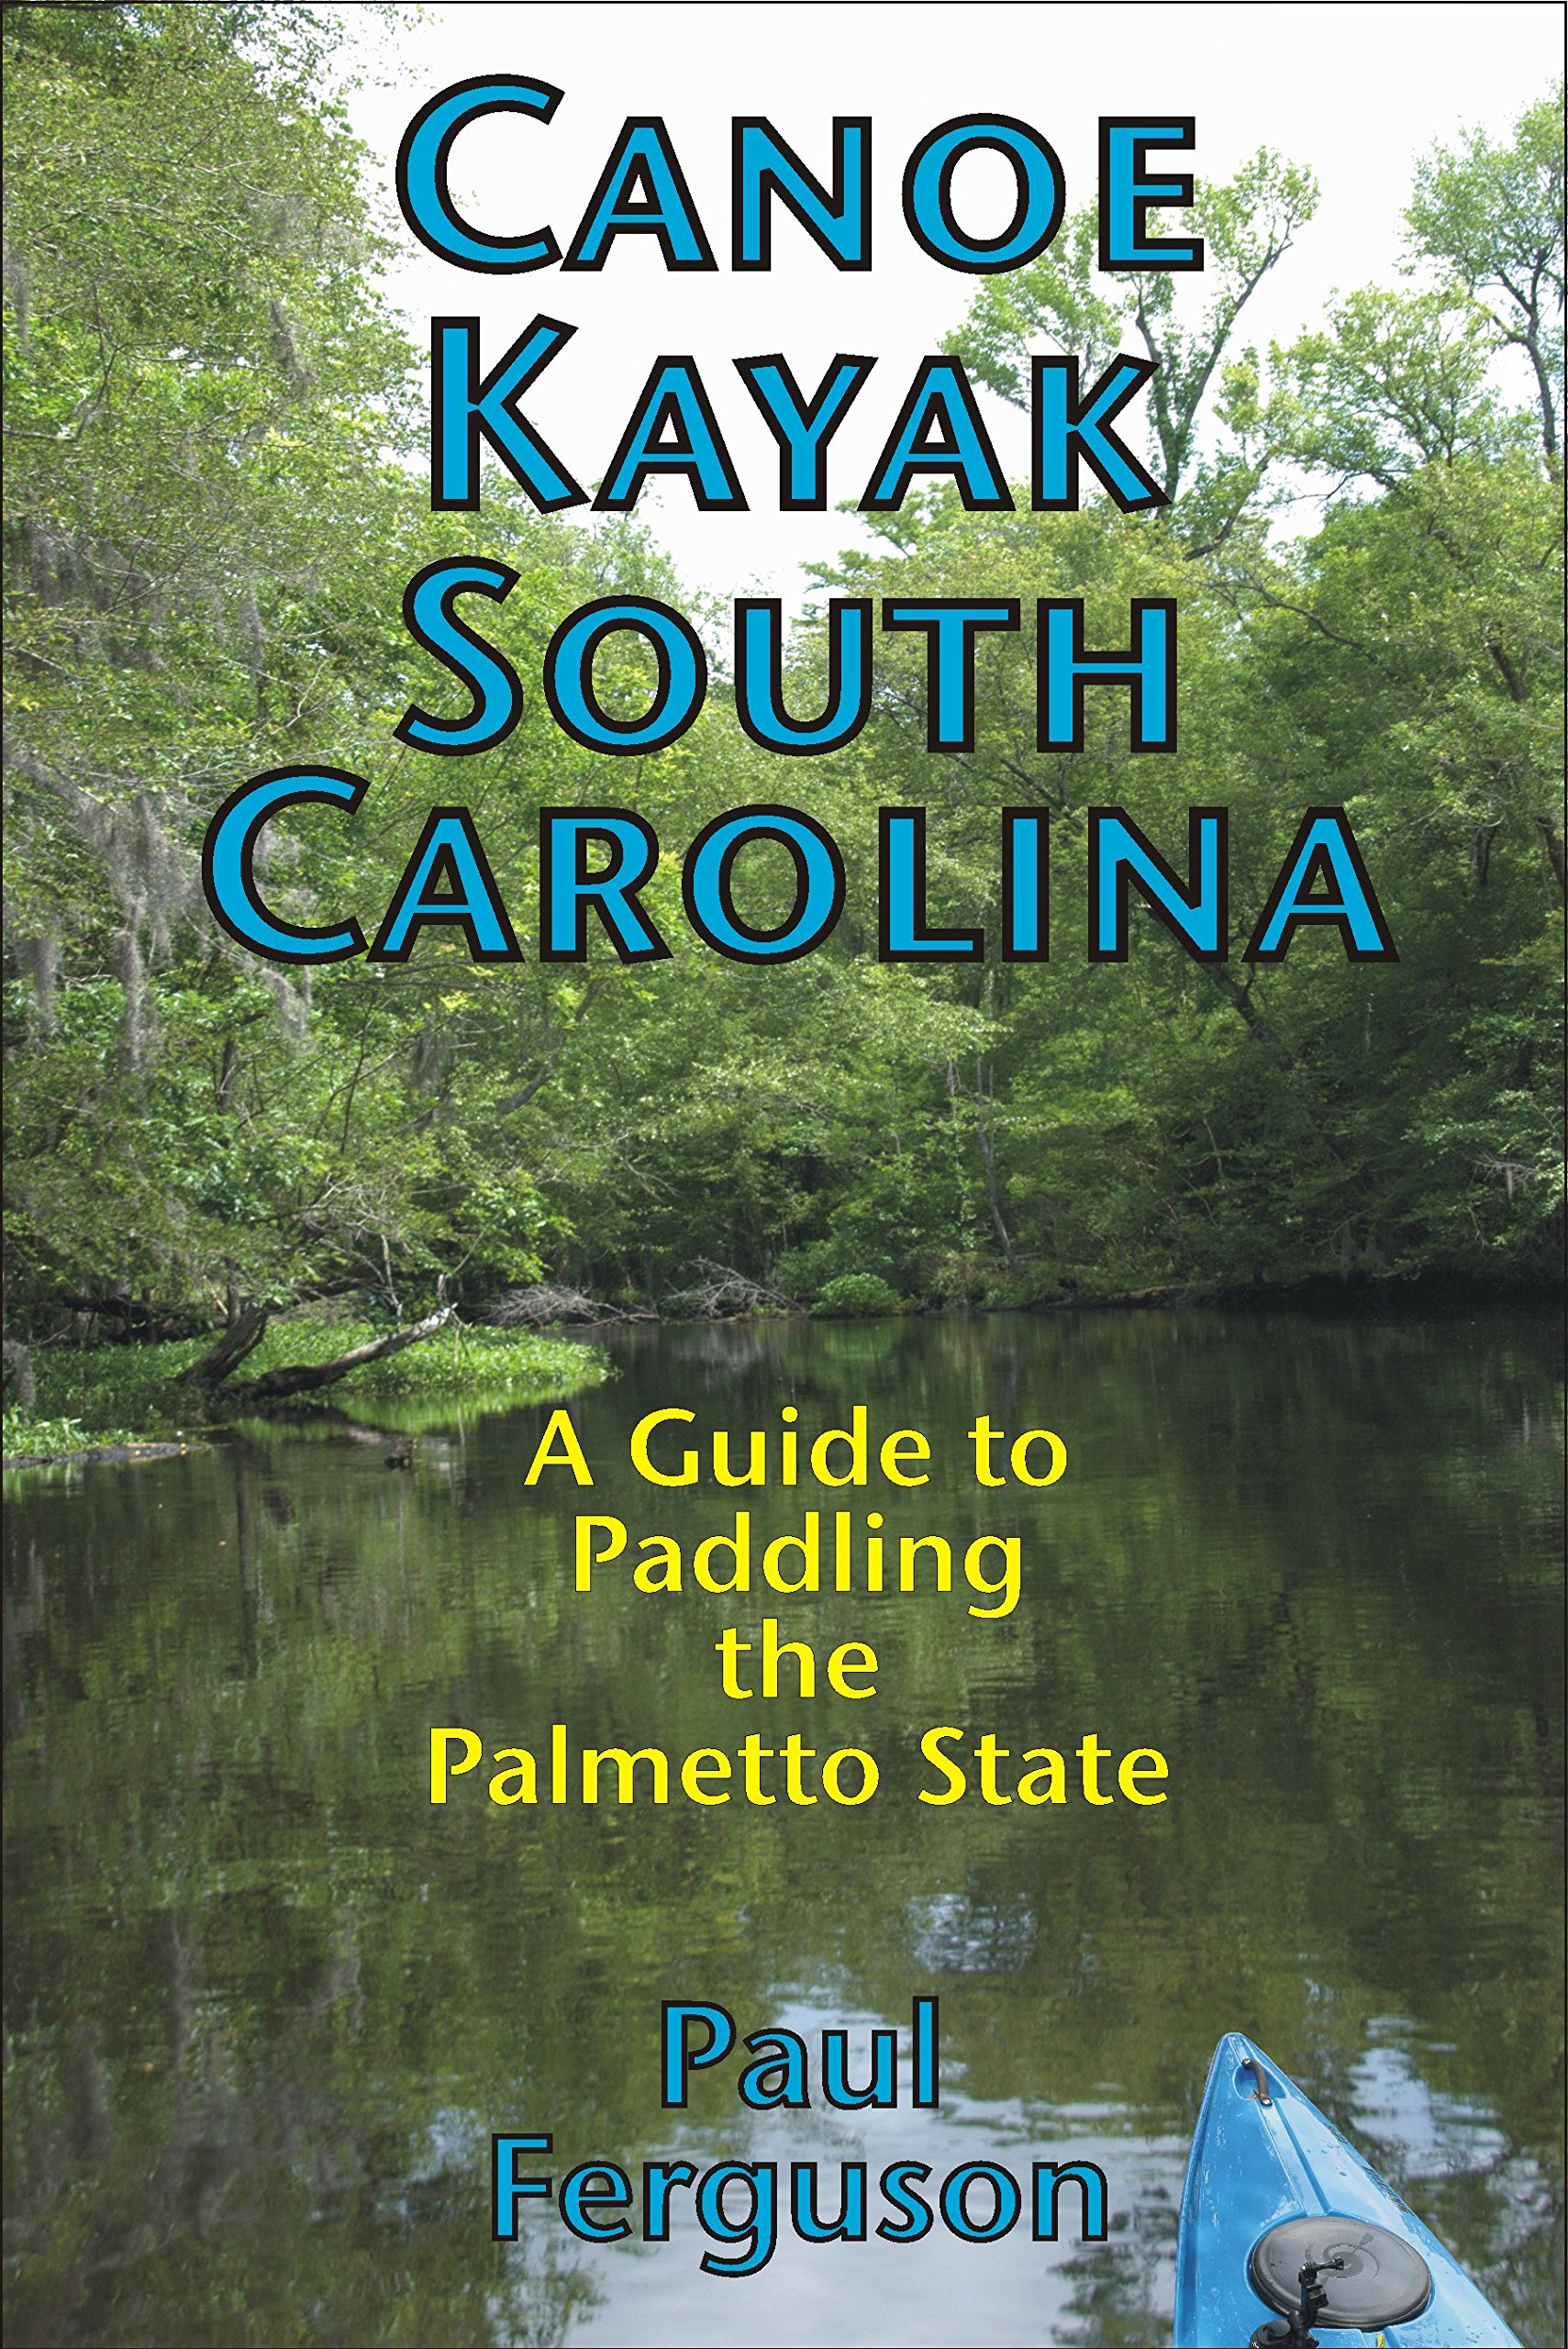 Canoe Kayak South Carolina: A Guide to Paddling the Palmetto State ...